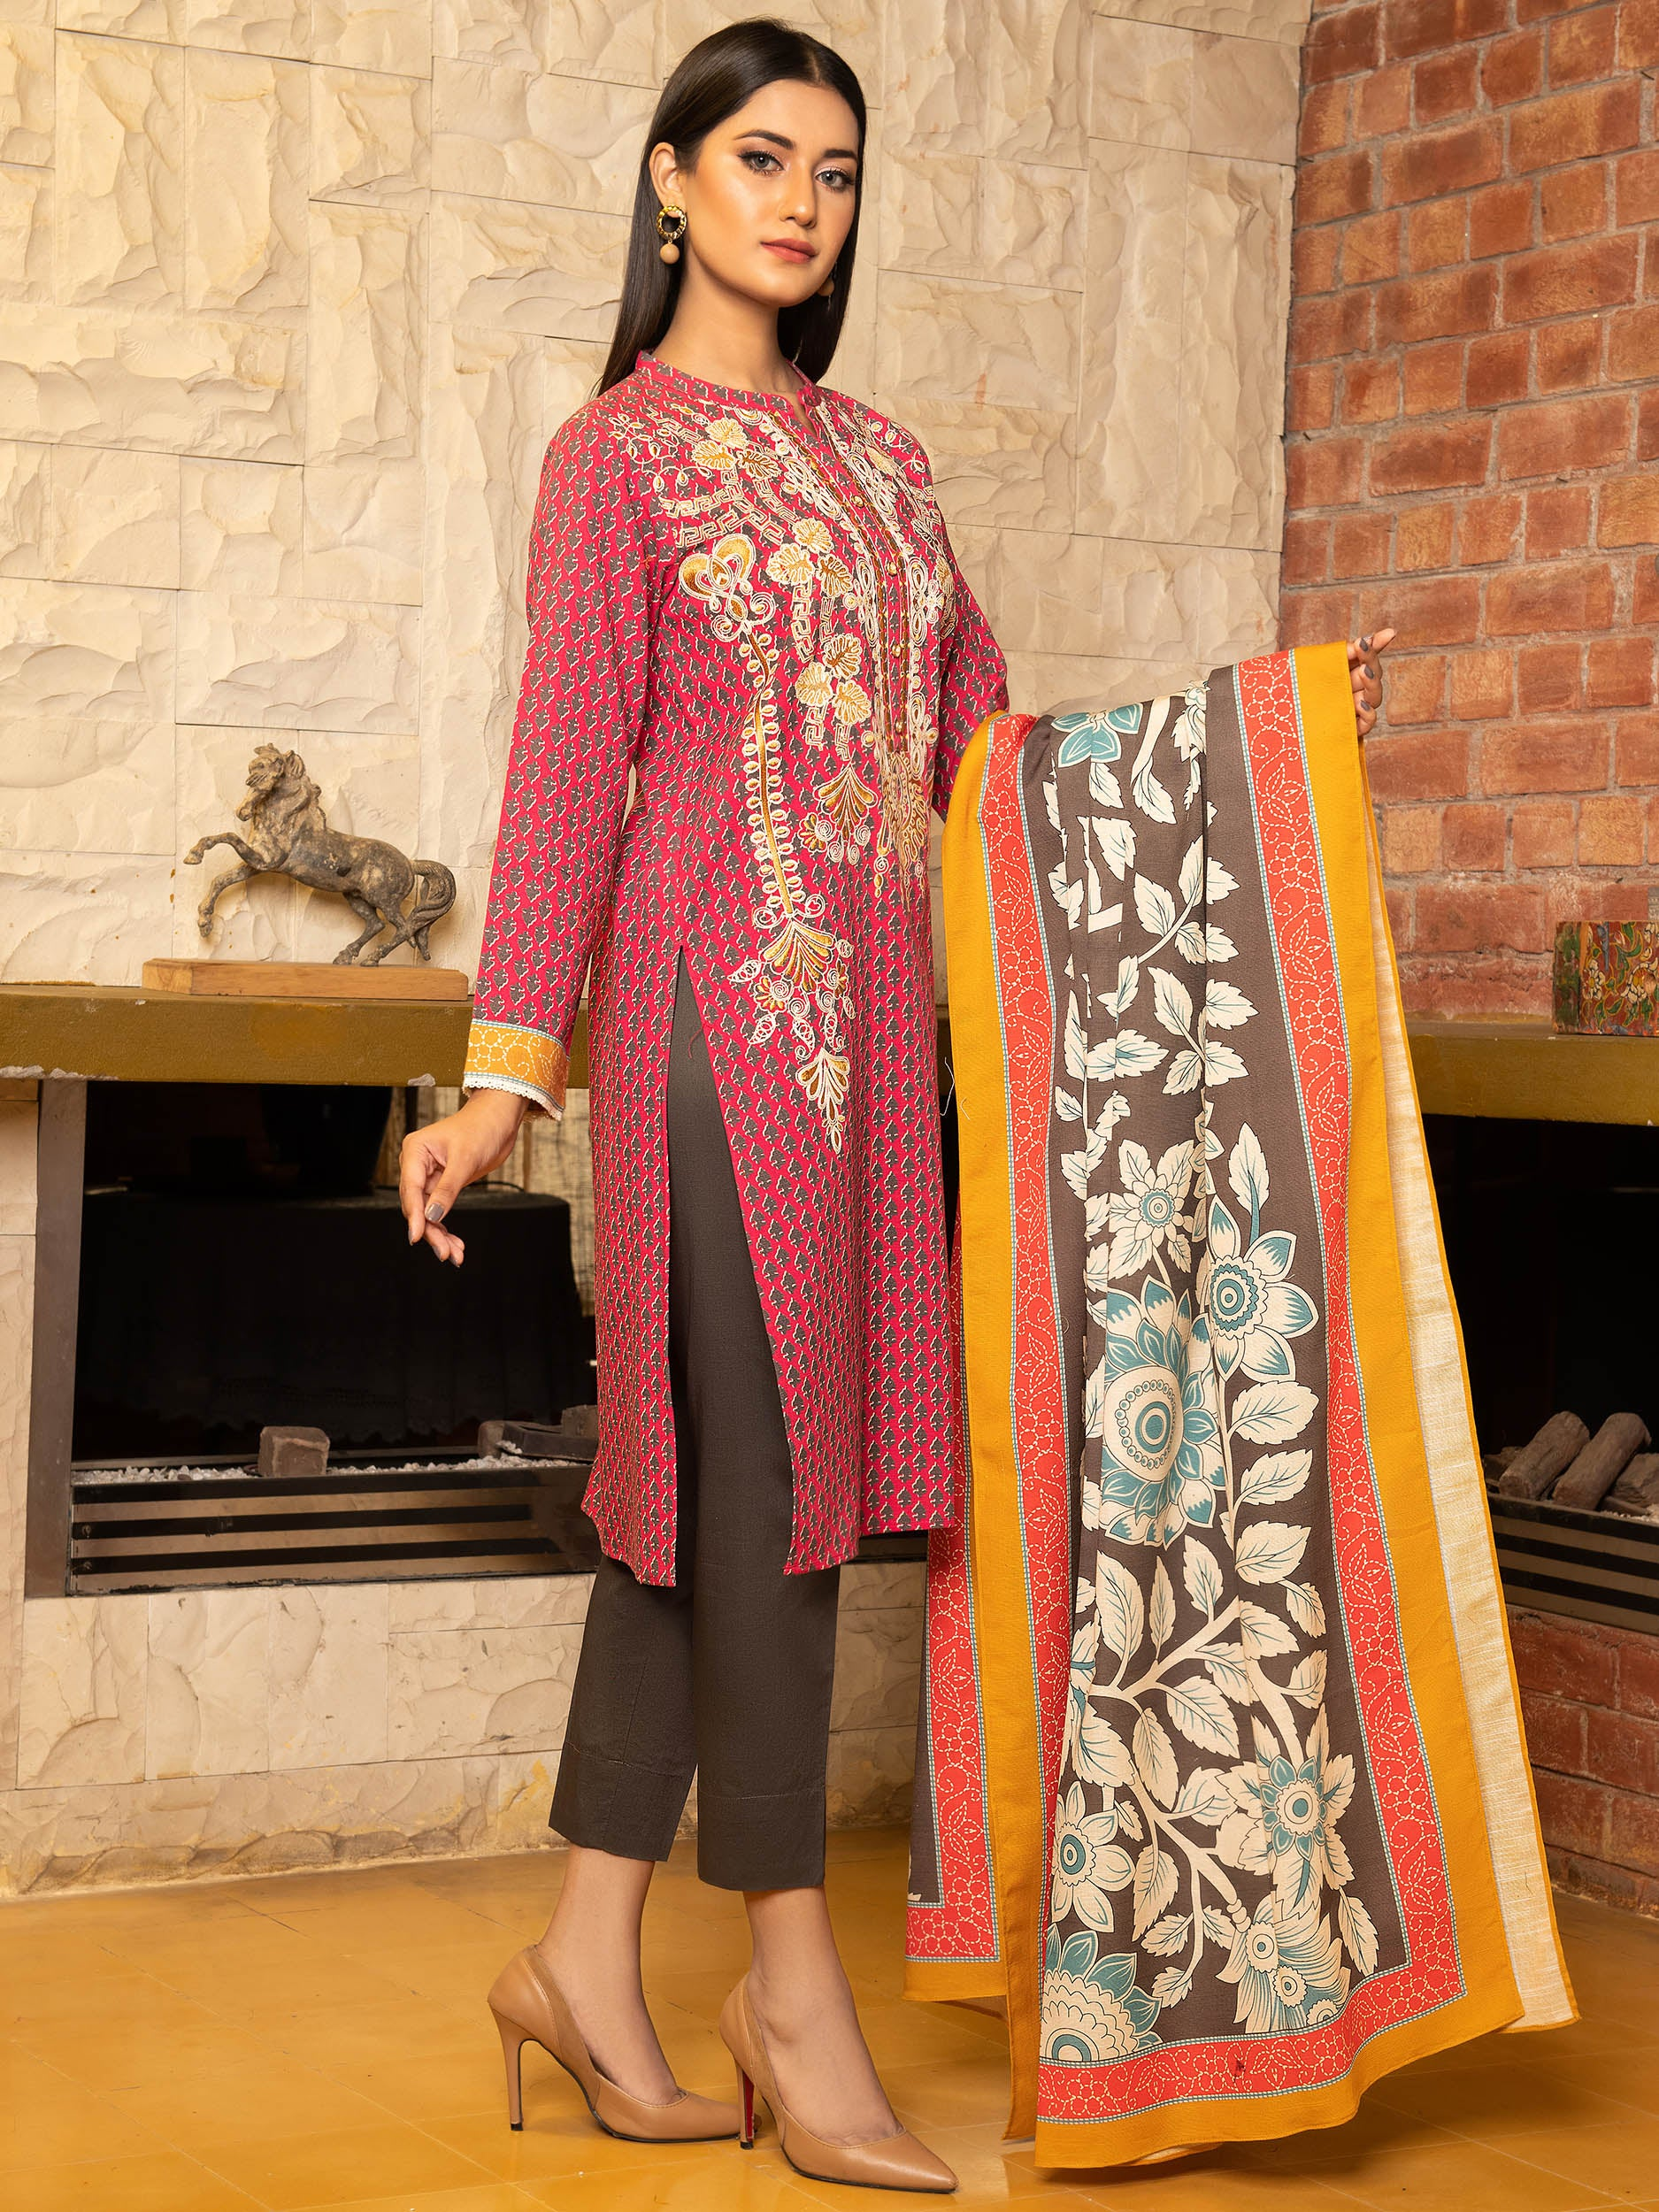 2-Pc Embroidered Slub Khaddar Suit